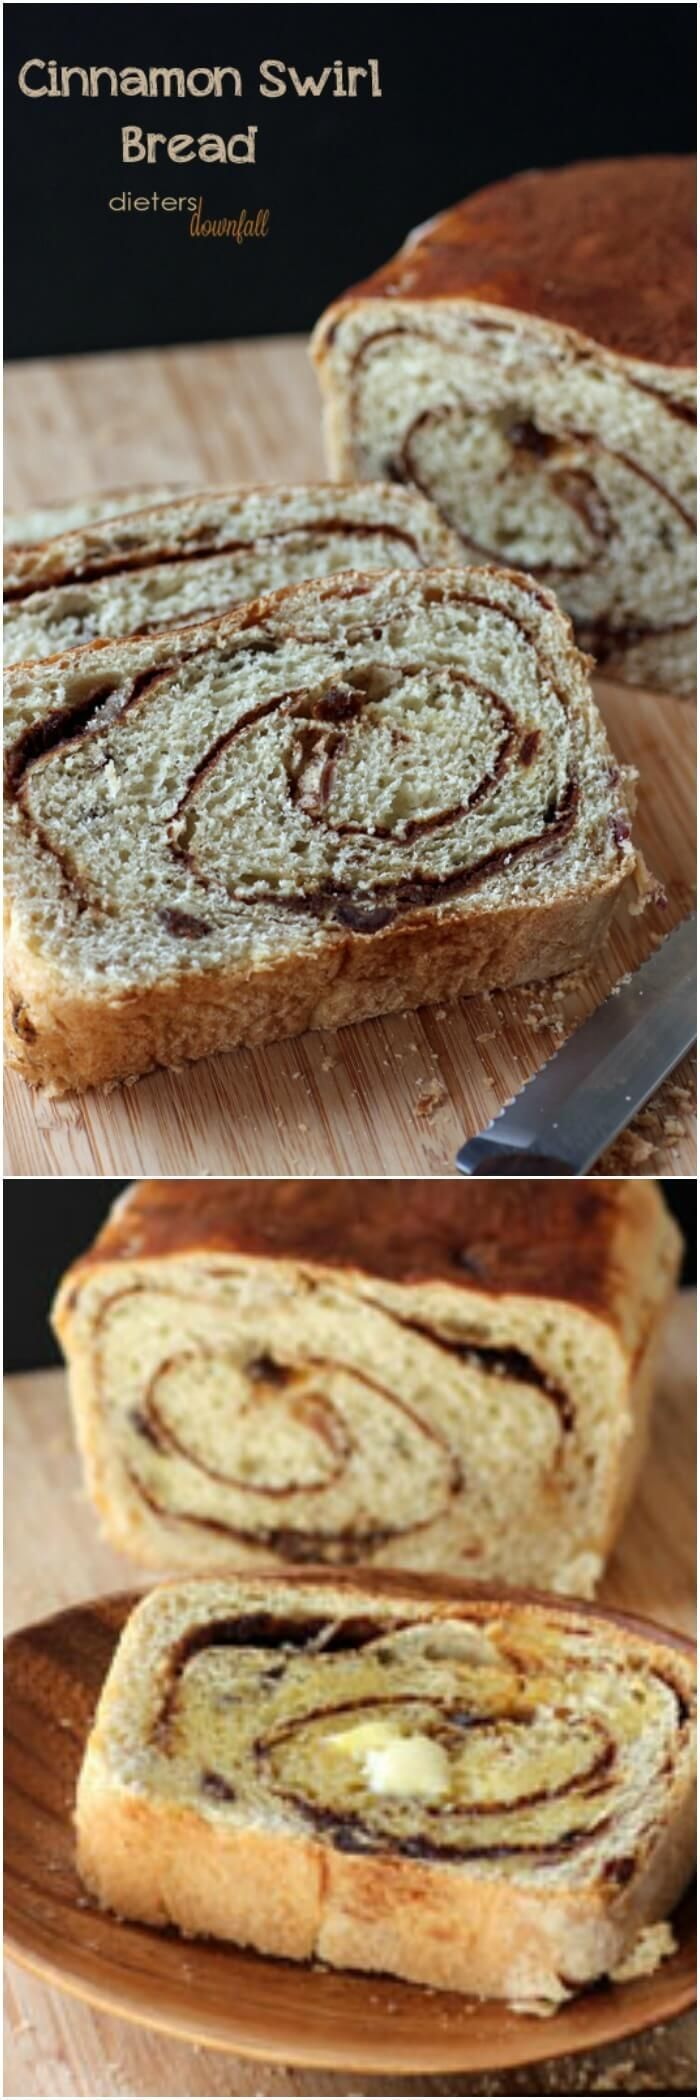 Homemade Cinnamon Raisin Bread Recipe. Makes two loaves. Tastes great toasted and slathered in butter!